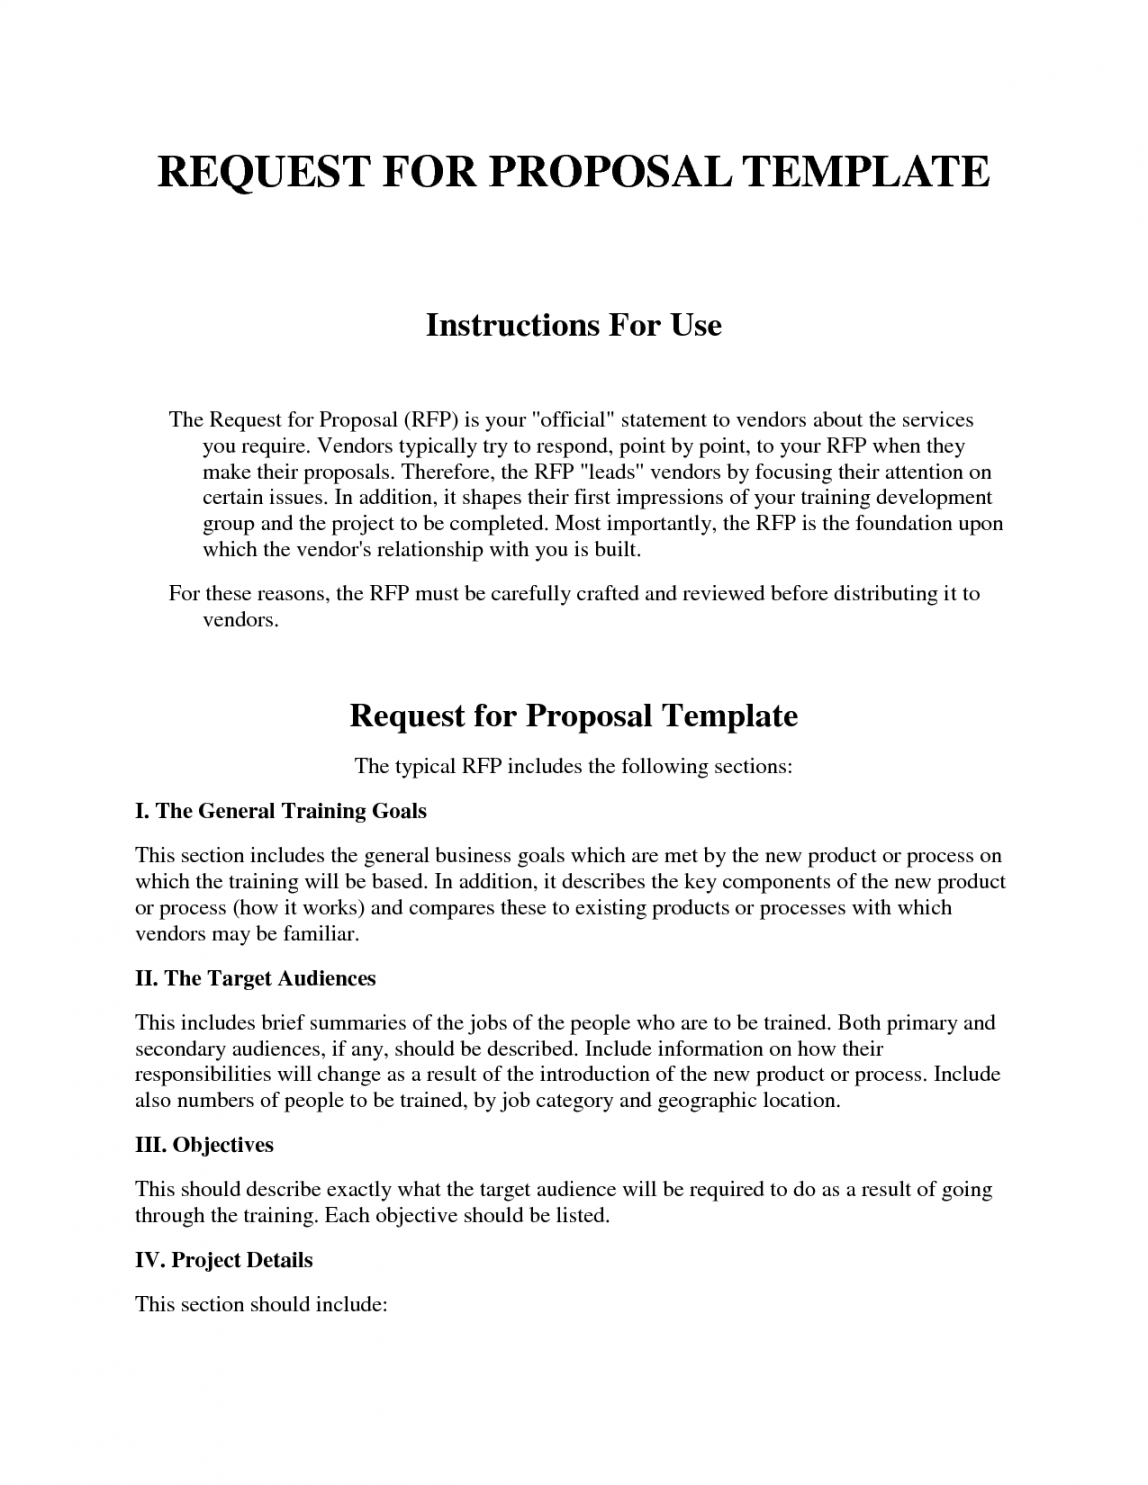 Request For Proposal Template Microsoft Word Camisonline Event Request For Proposal Template Sample